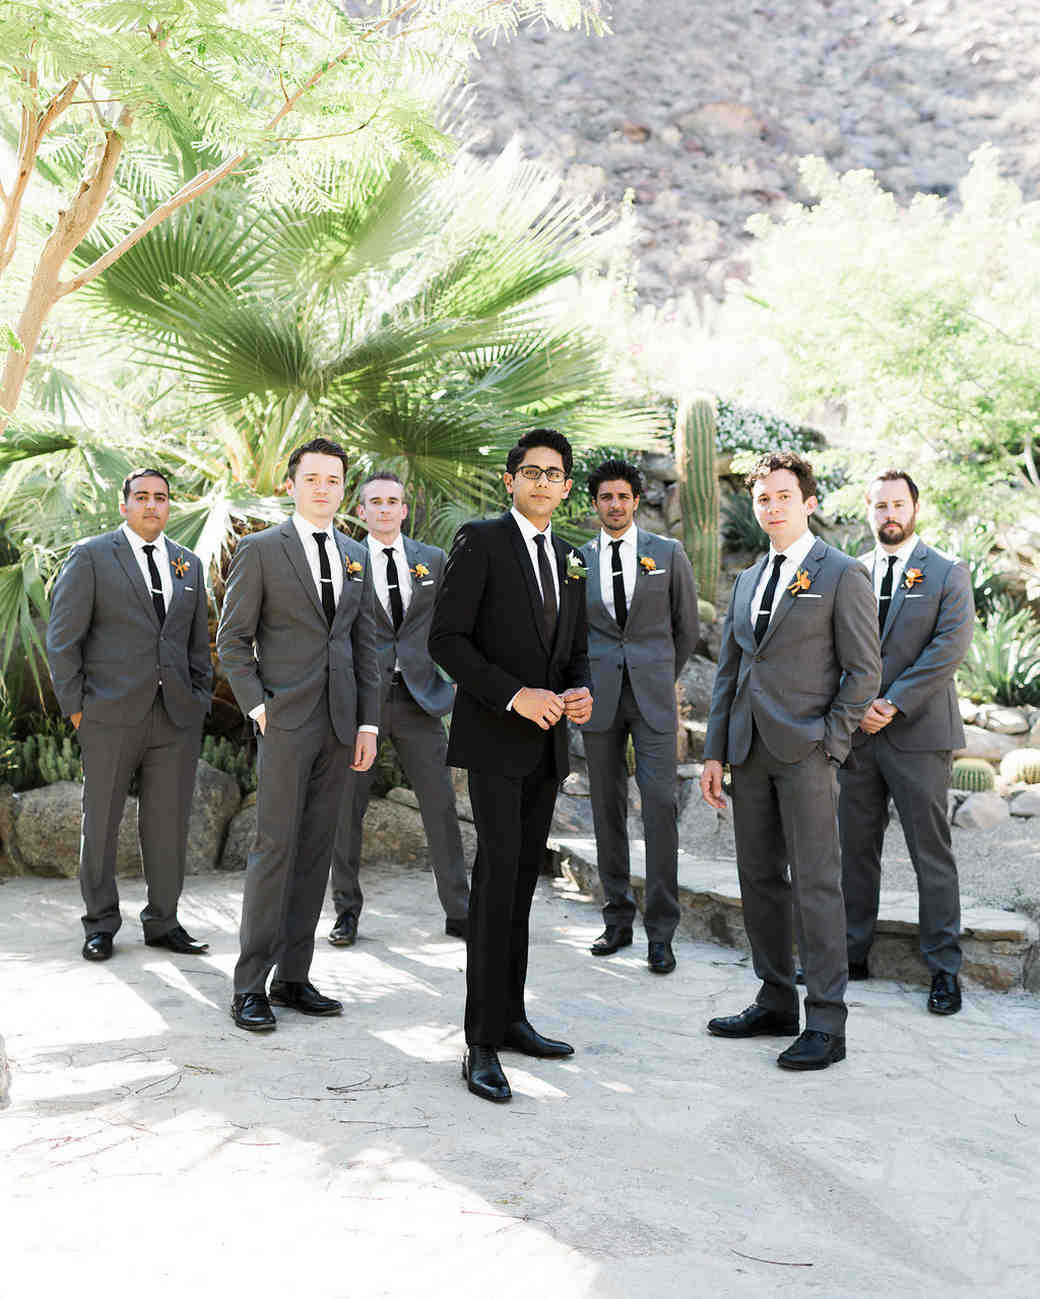 emily adhir wedding groomsmen